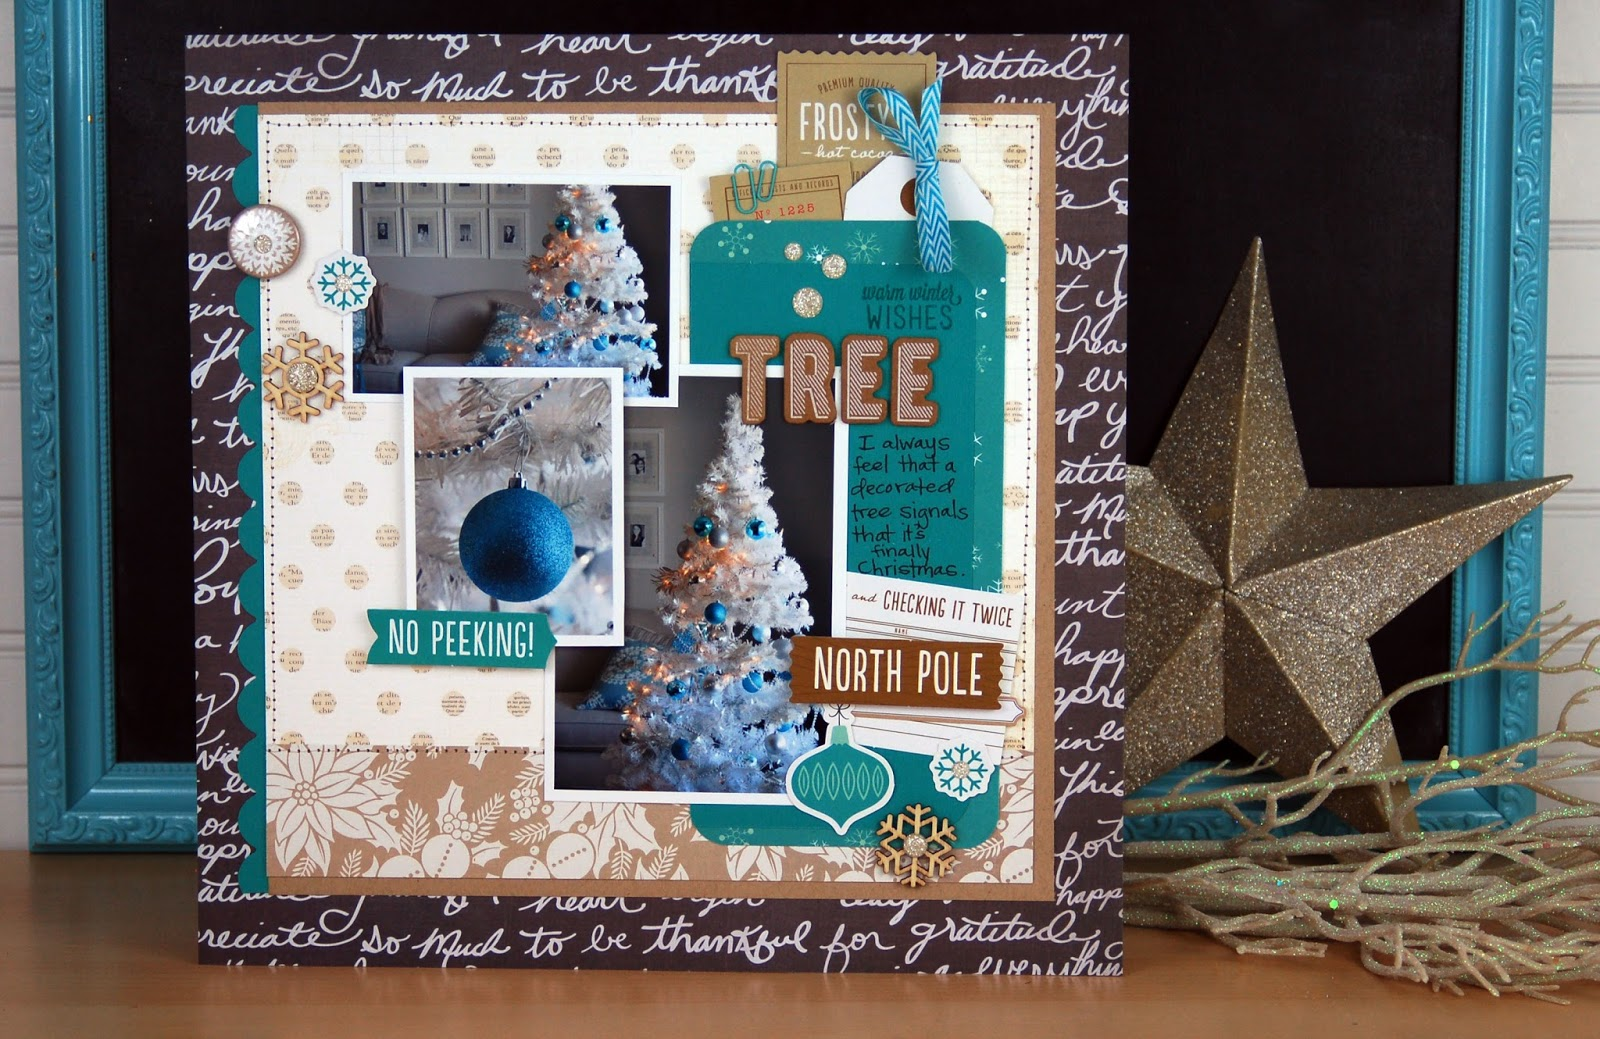 http://1.bp.blogspot.com/-ToypUE1F26o/VPWrJQl5fAI/AAAAAAAAUGQ/gd3uTCxBvEo/s1600/Winter-Wishes-Tree-Layout-by-Jen-Gallacher.jpg